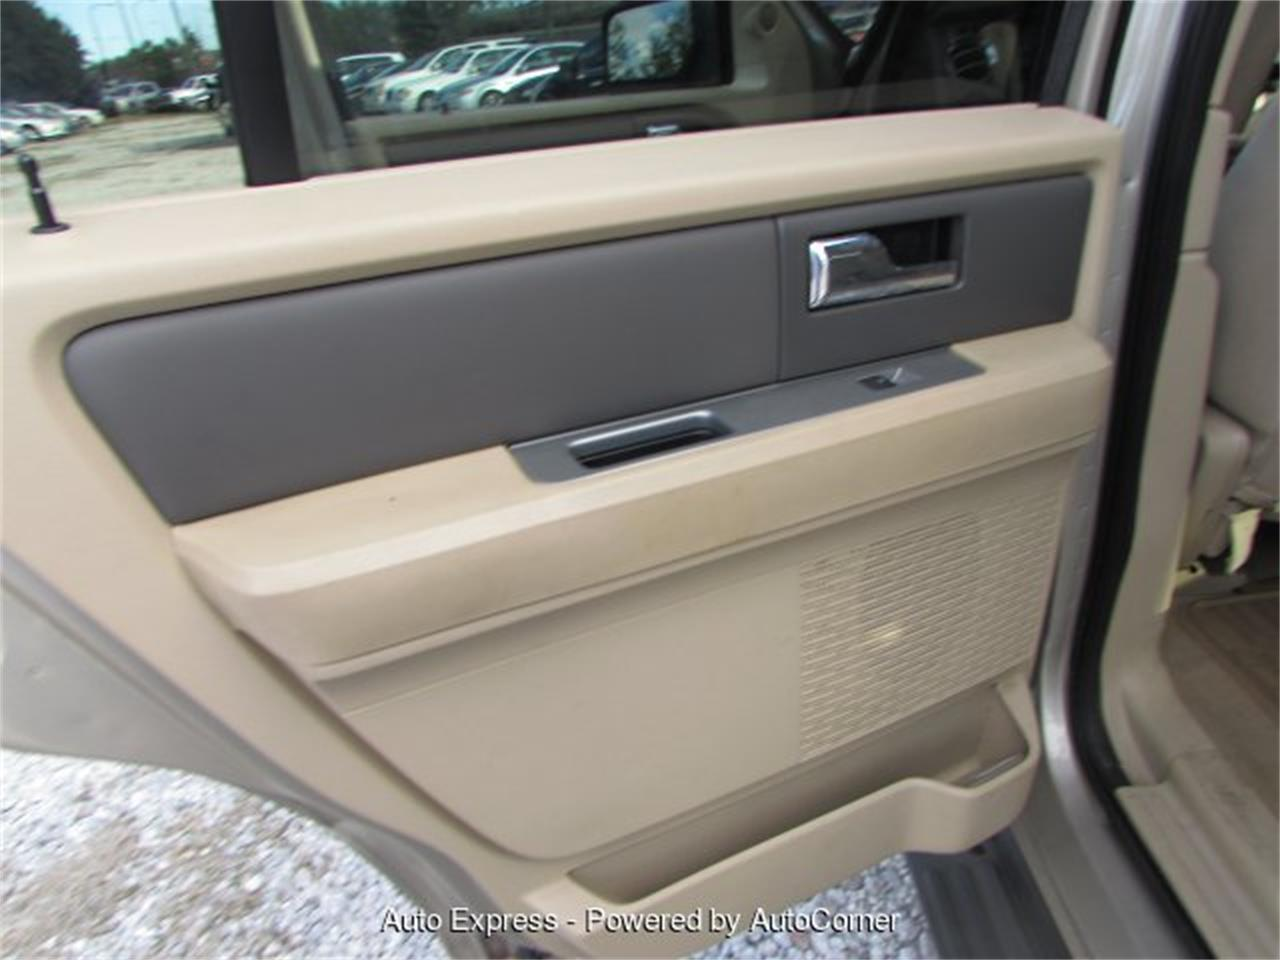 2008 Ford Expedition for sale in Orlando, FL – photo 14